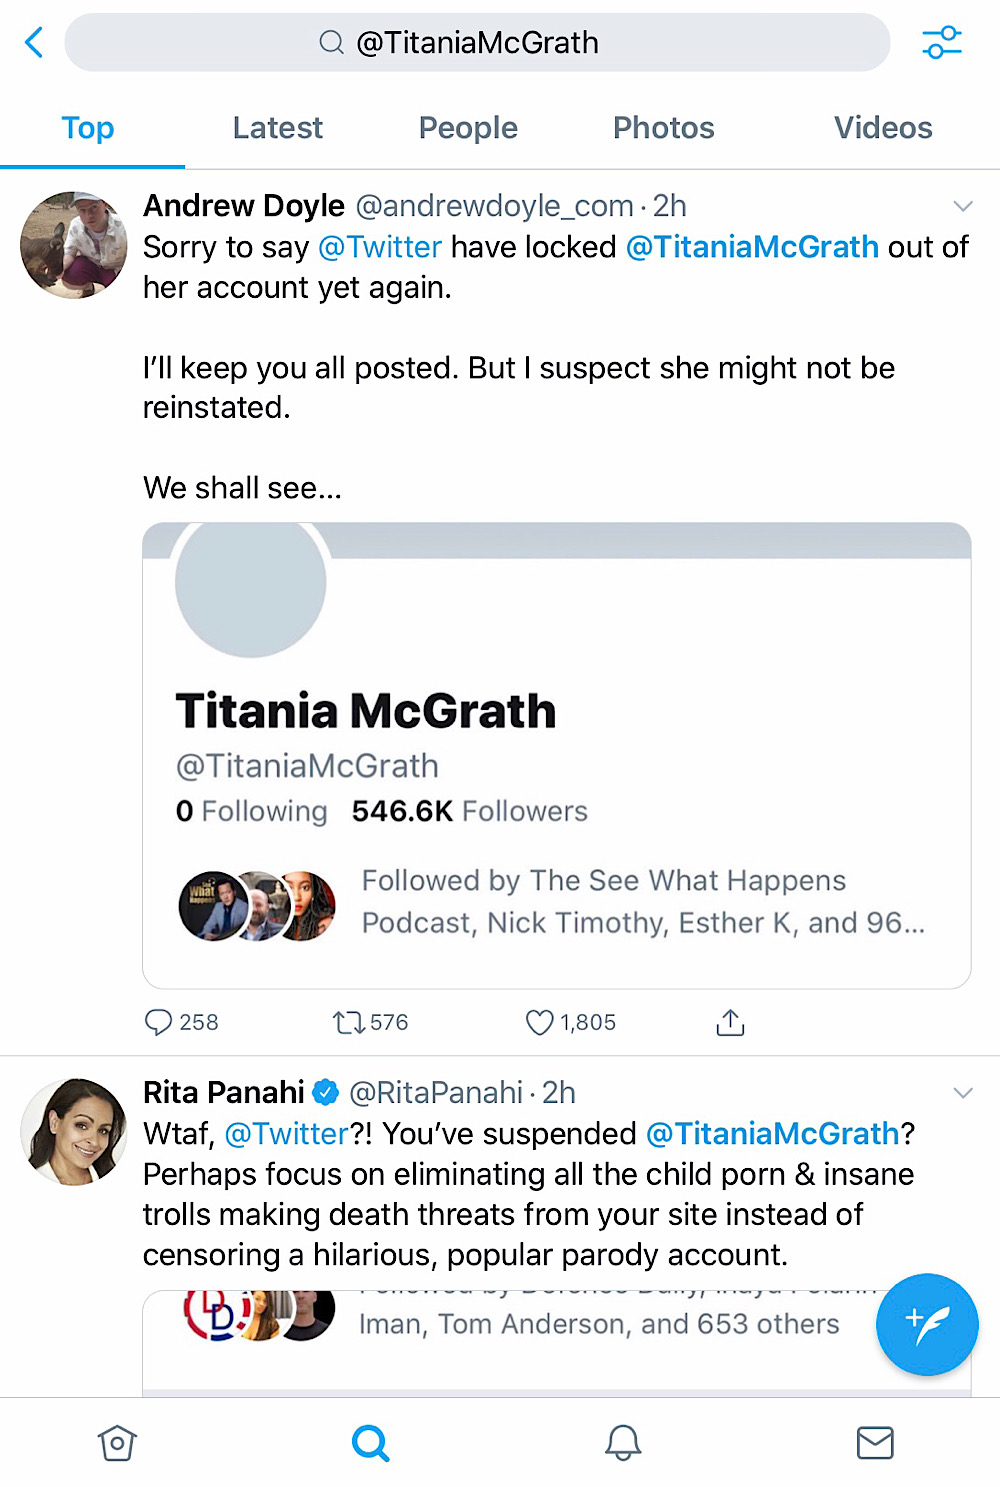 """Titania McGrath's account and tweets have been removed from search results for """"@TitaniaMcGrath"""" (Twitter - @TitaniaMcGrath)"""